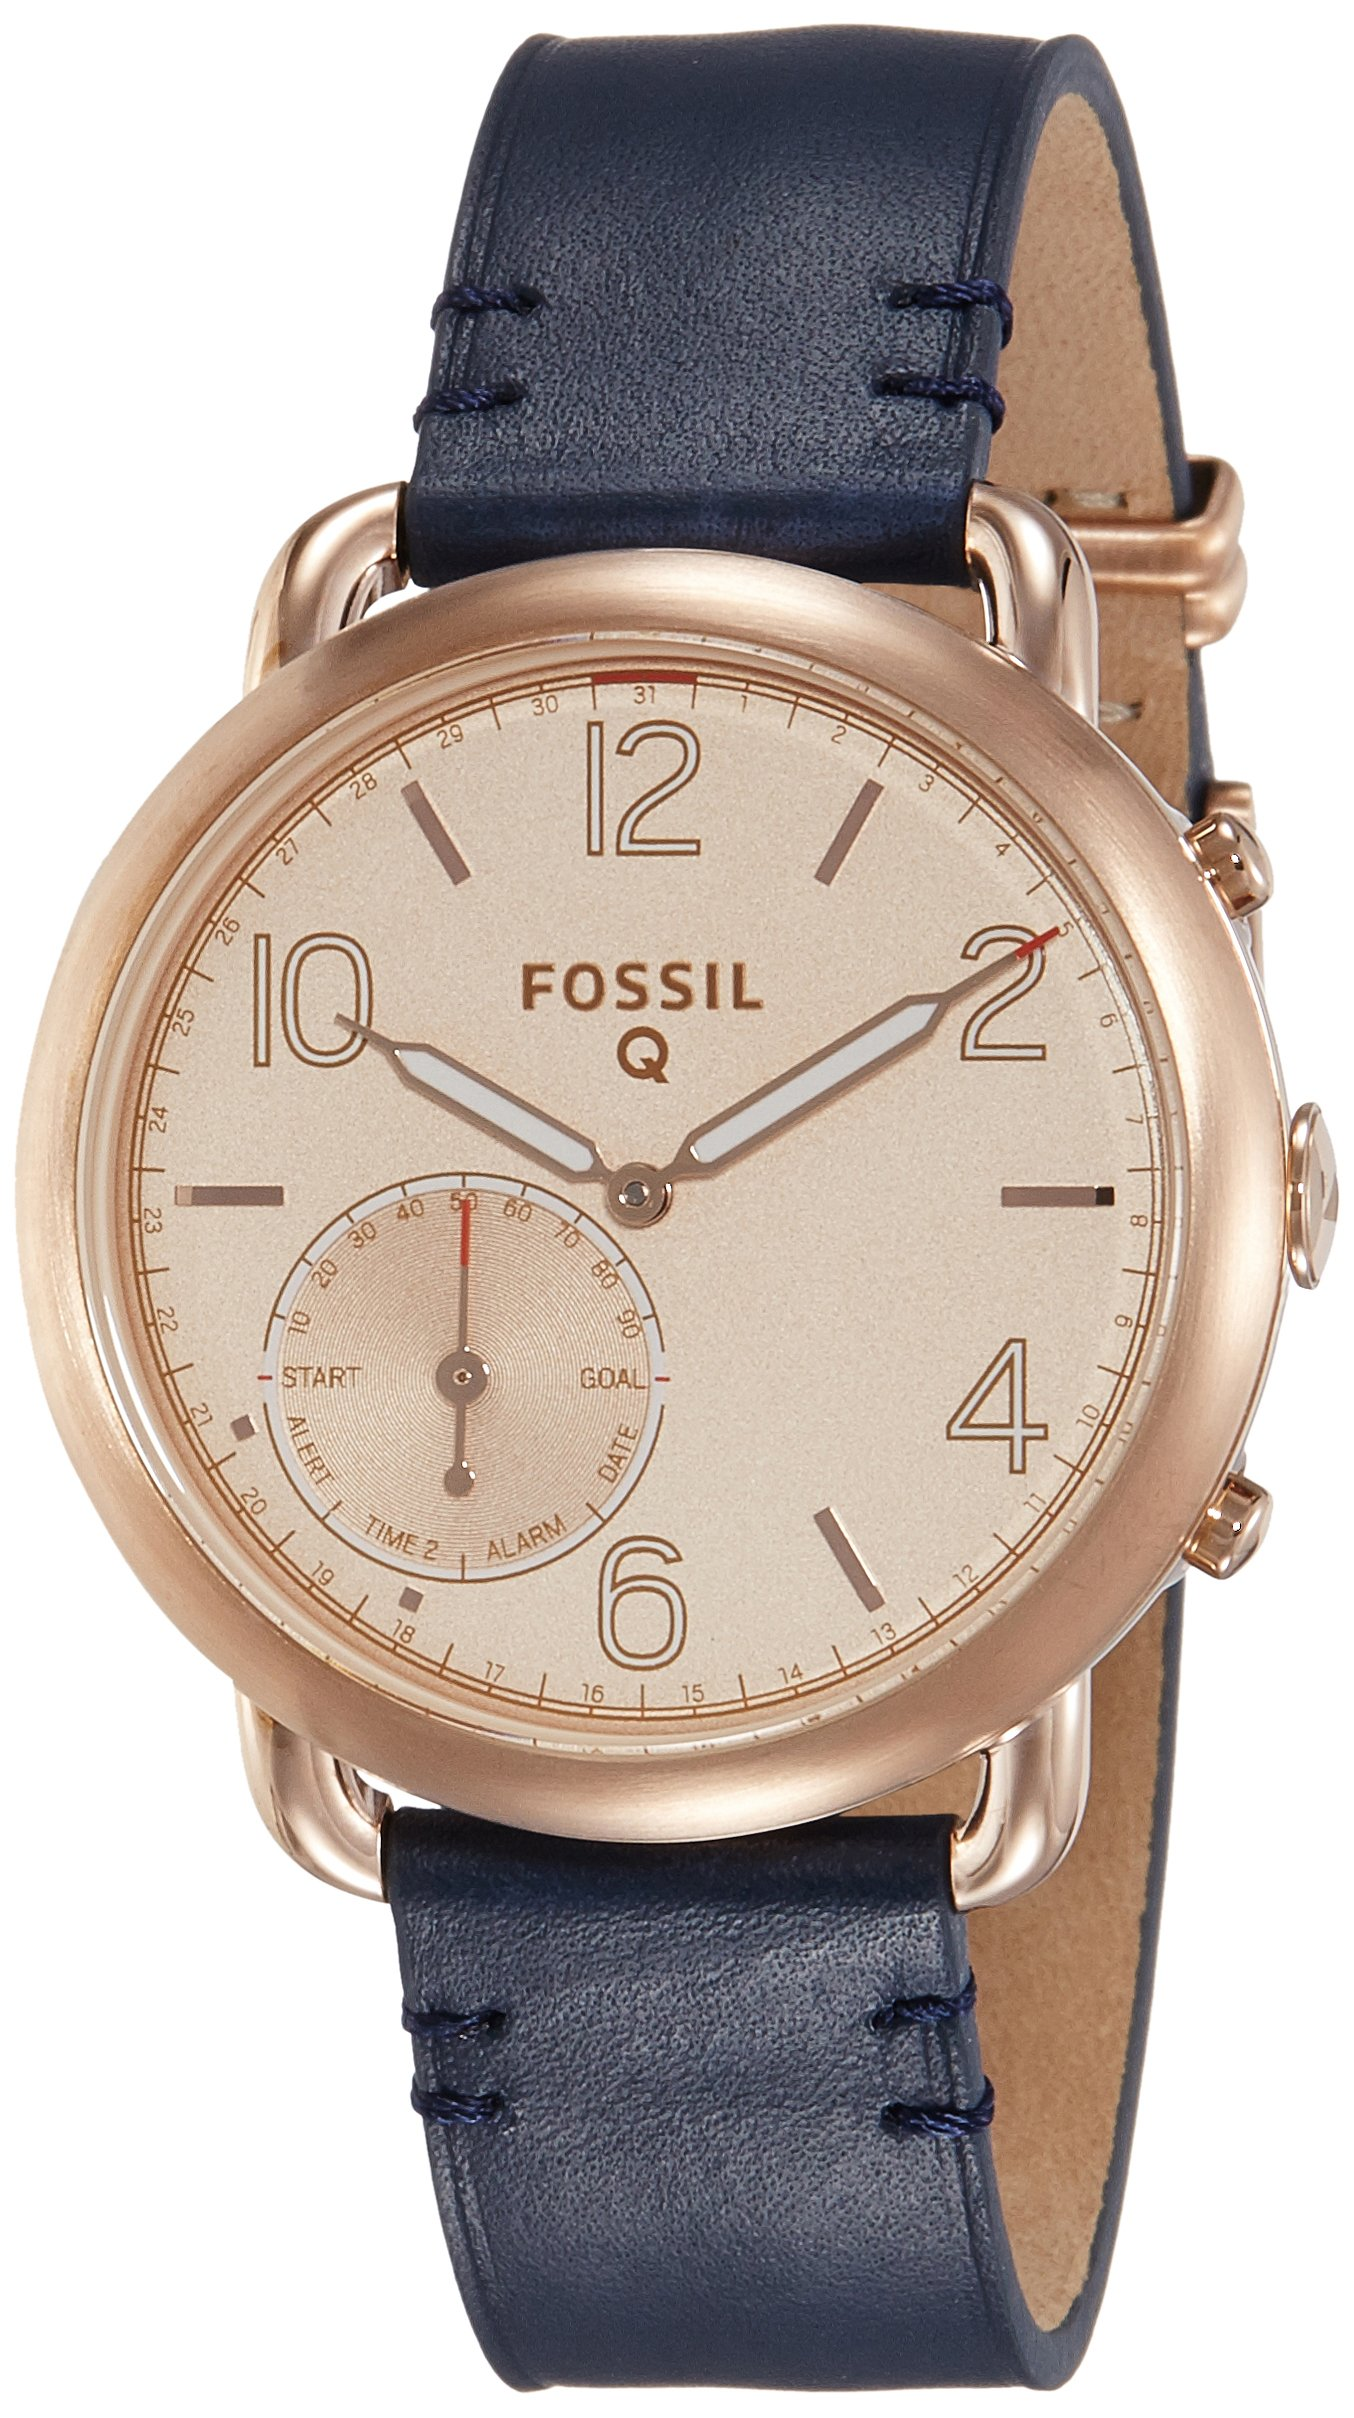 Fossil Hybrid Smartwatch - Q Tailor Dark Navy Leather by Fossil (Image #4)